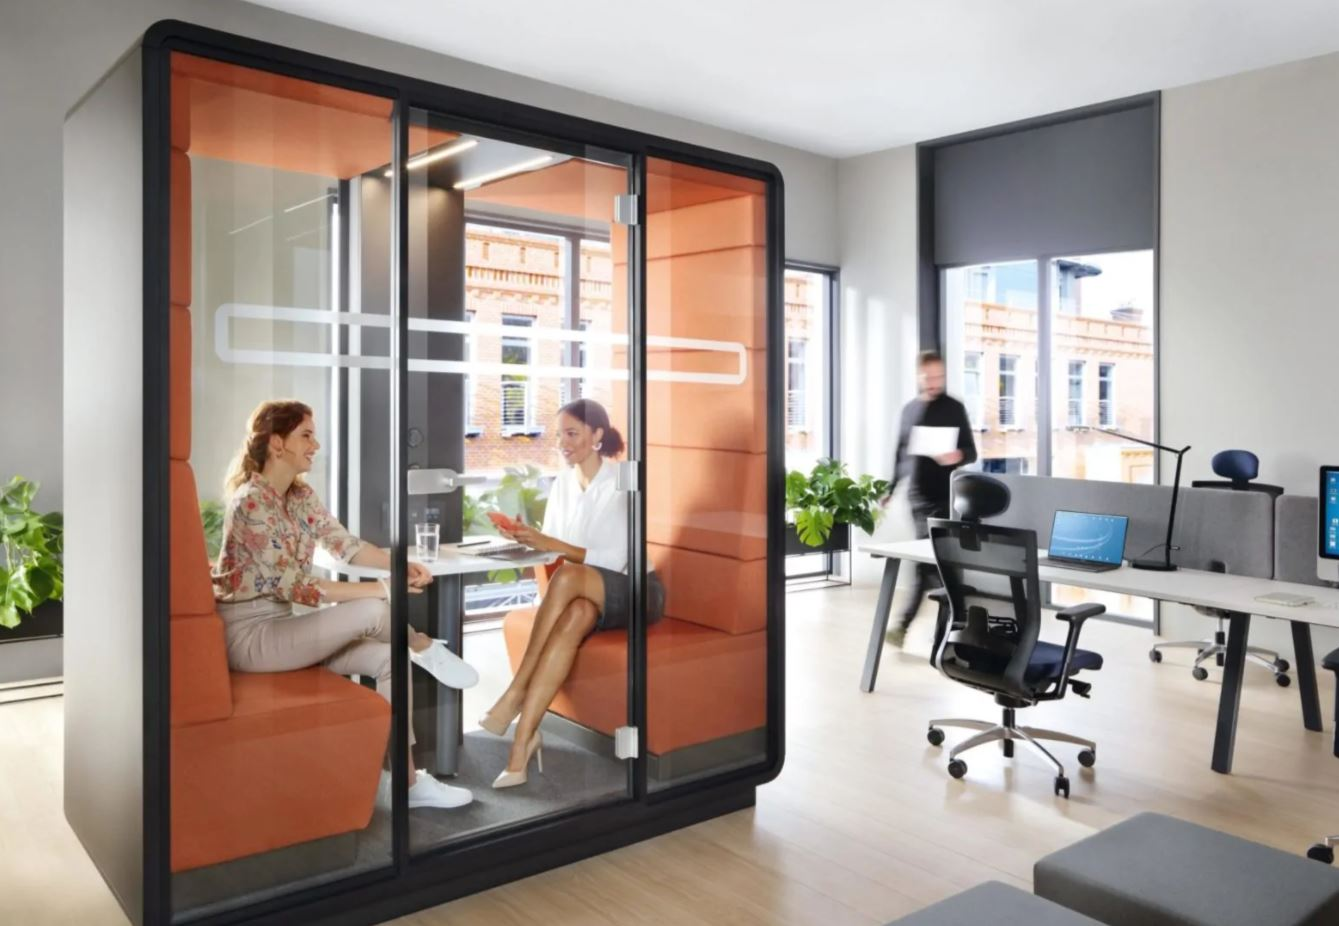 Acoustic meeting space next to an office